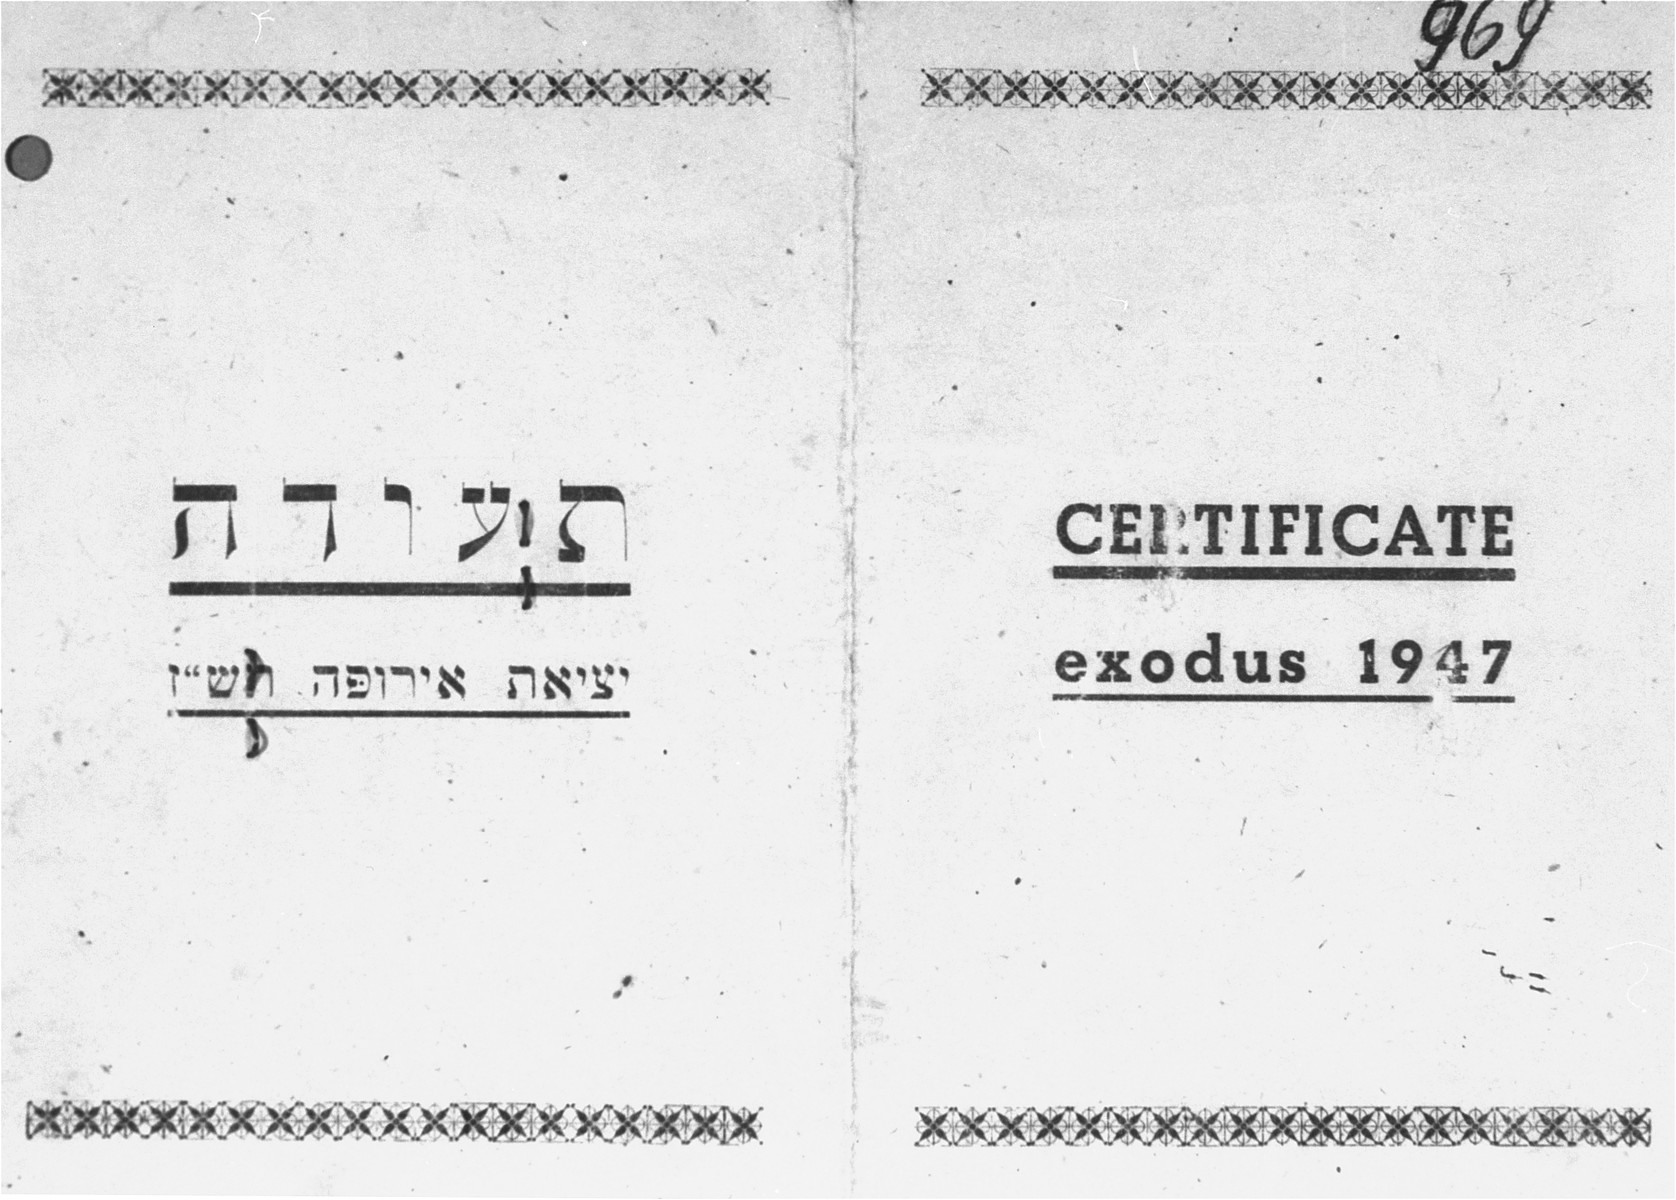 """The cover of a DP identity card, issued by the Jewish administration of the Poppendorf displaced persons camp, certifying that Cilia Rudashevsky was an illegal immigrant aboard the Exodus 1947, who was brought back to Germany against her will, and who """"is in exile on [her] way back to Eretz-Israel""""."""